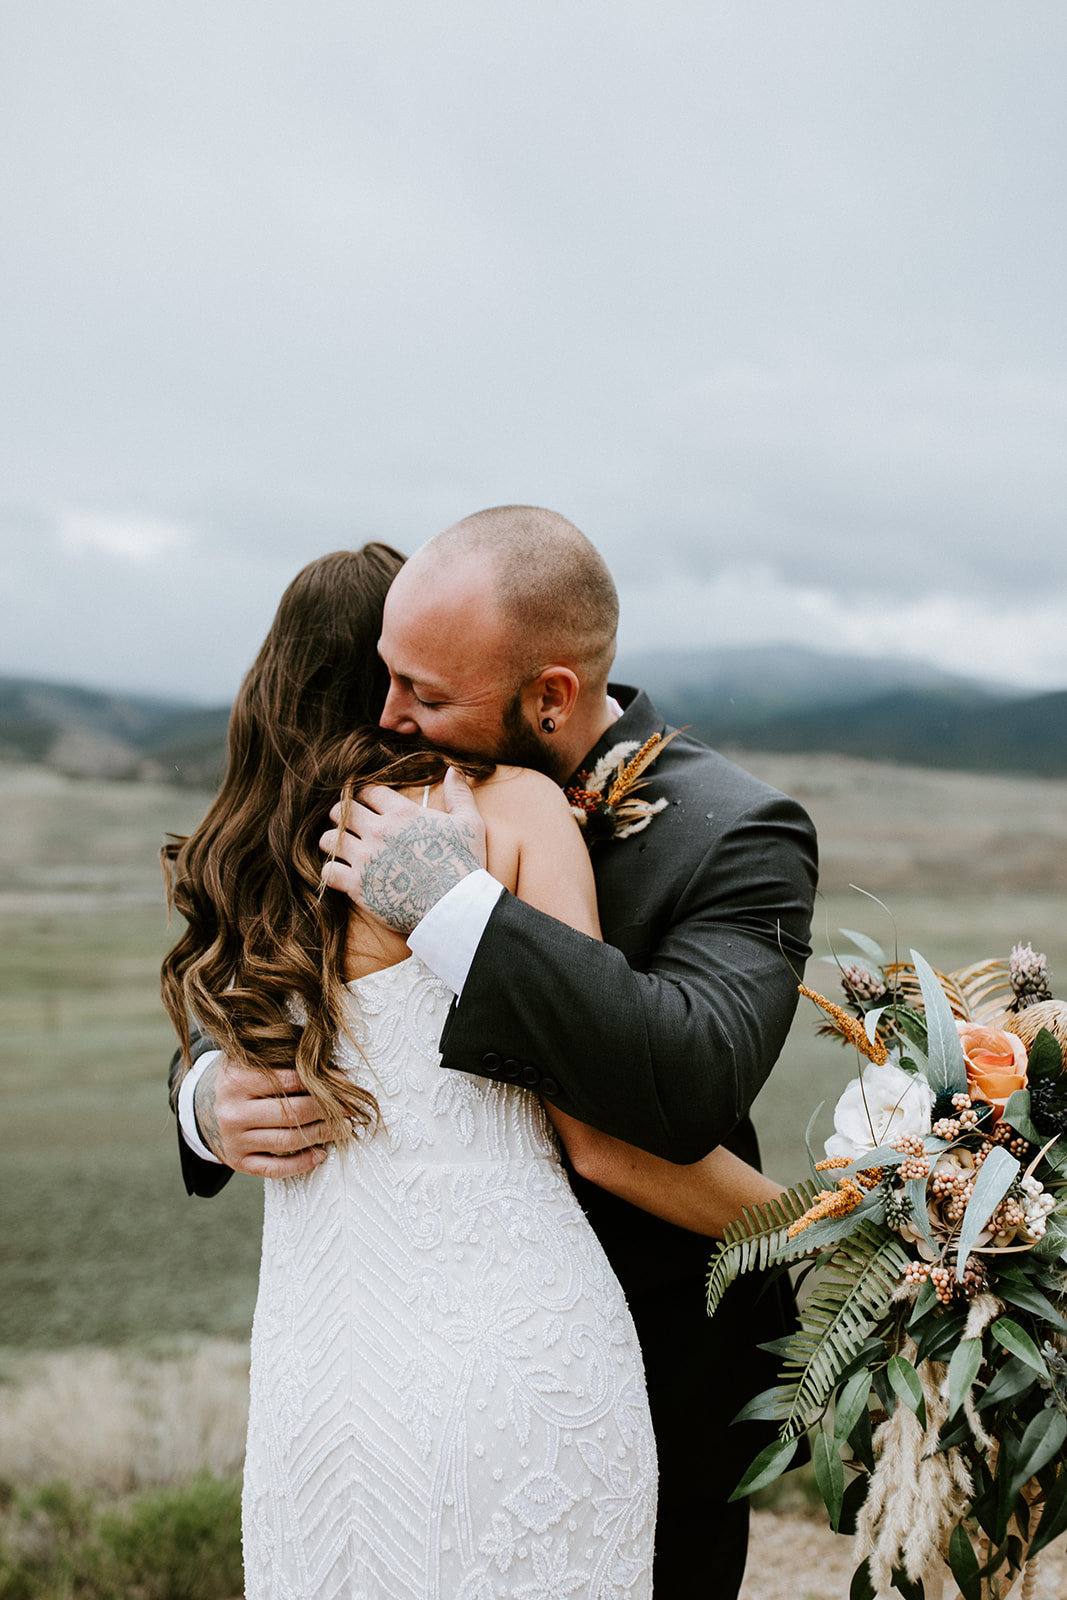 A bride and groom embrace in a field.